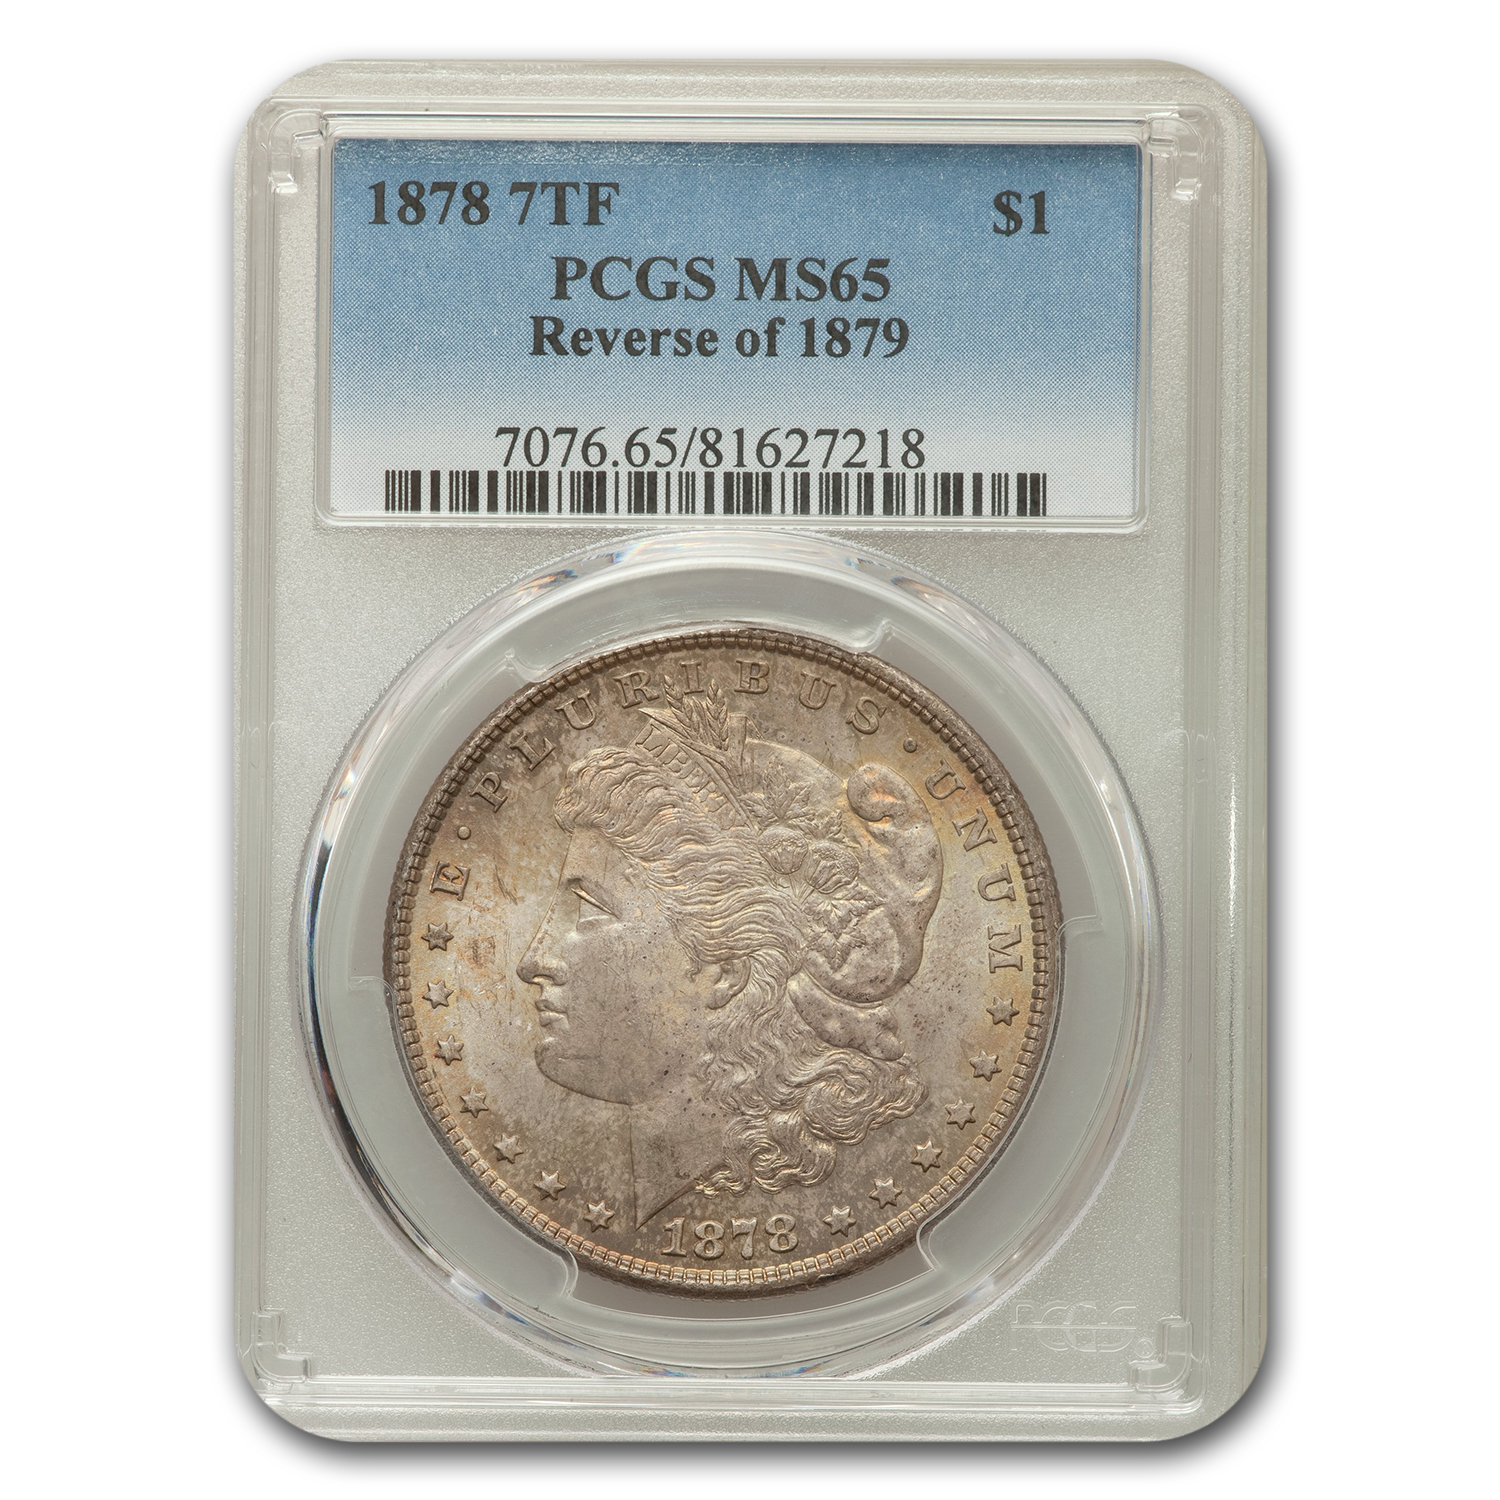 1878 Morgan Dollar 7 TF Rev of 79 MS-65 PCGS